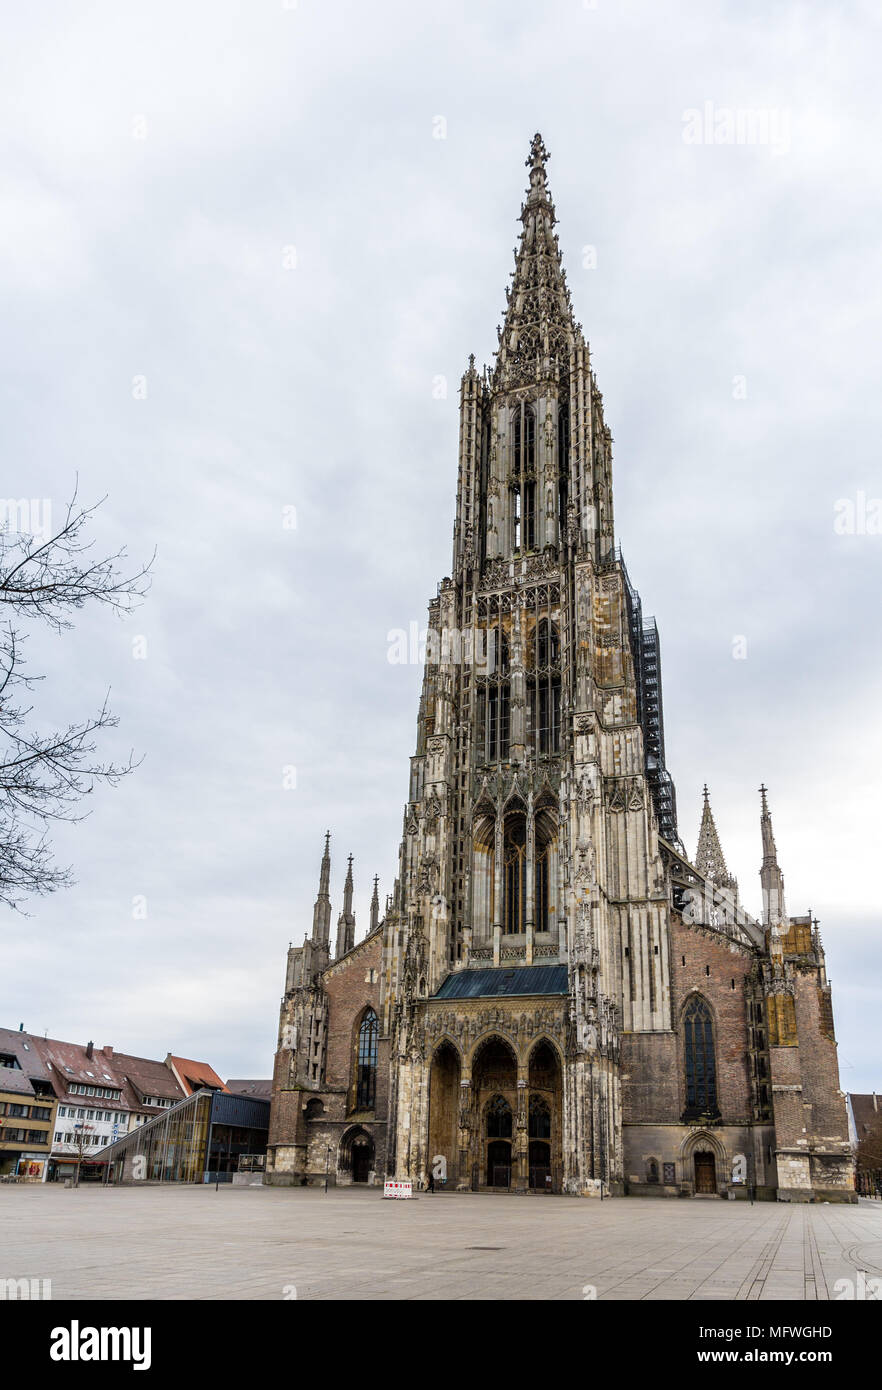 View of Ulm Minster - Germany, Baden-Wurttemberg Stock Photo